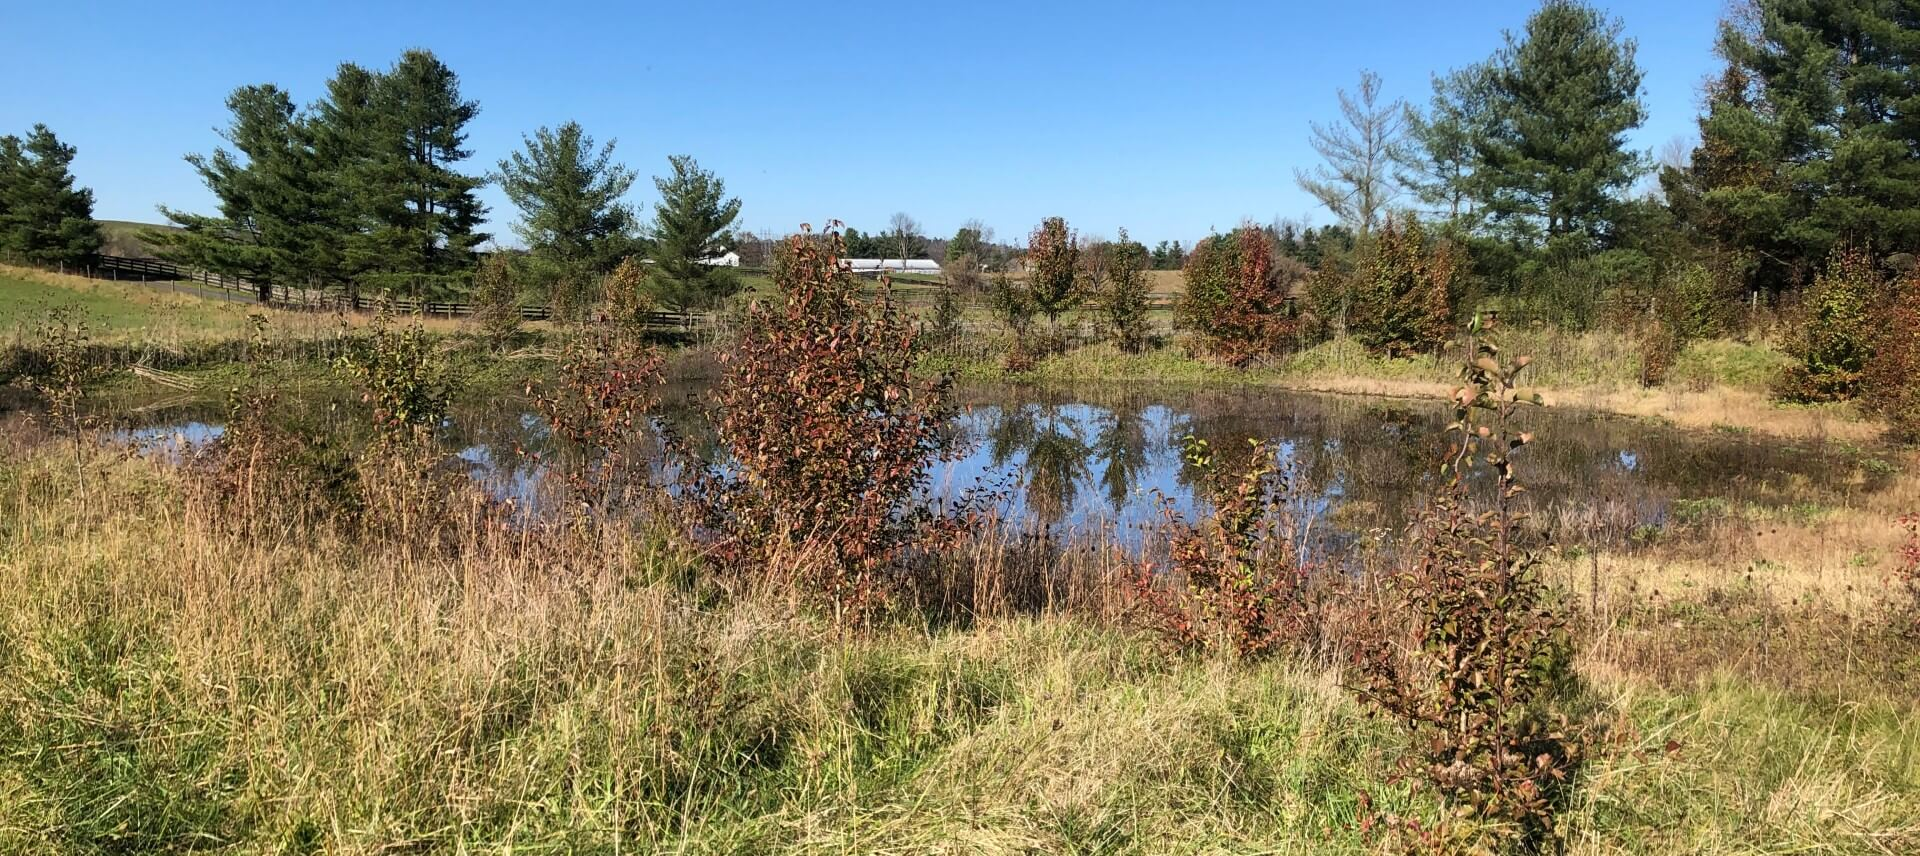 A pond surrounded by invasive Callery Pear trees and a meadow.